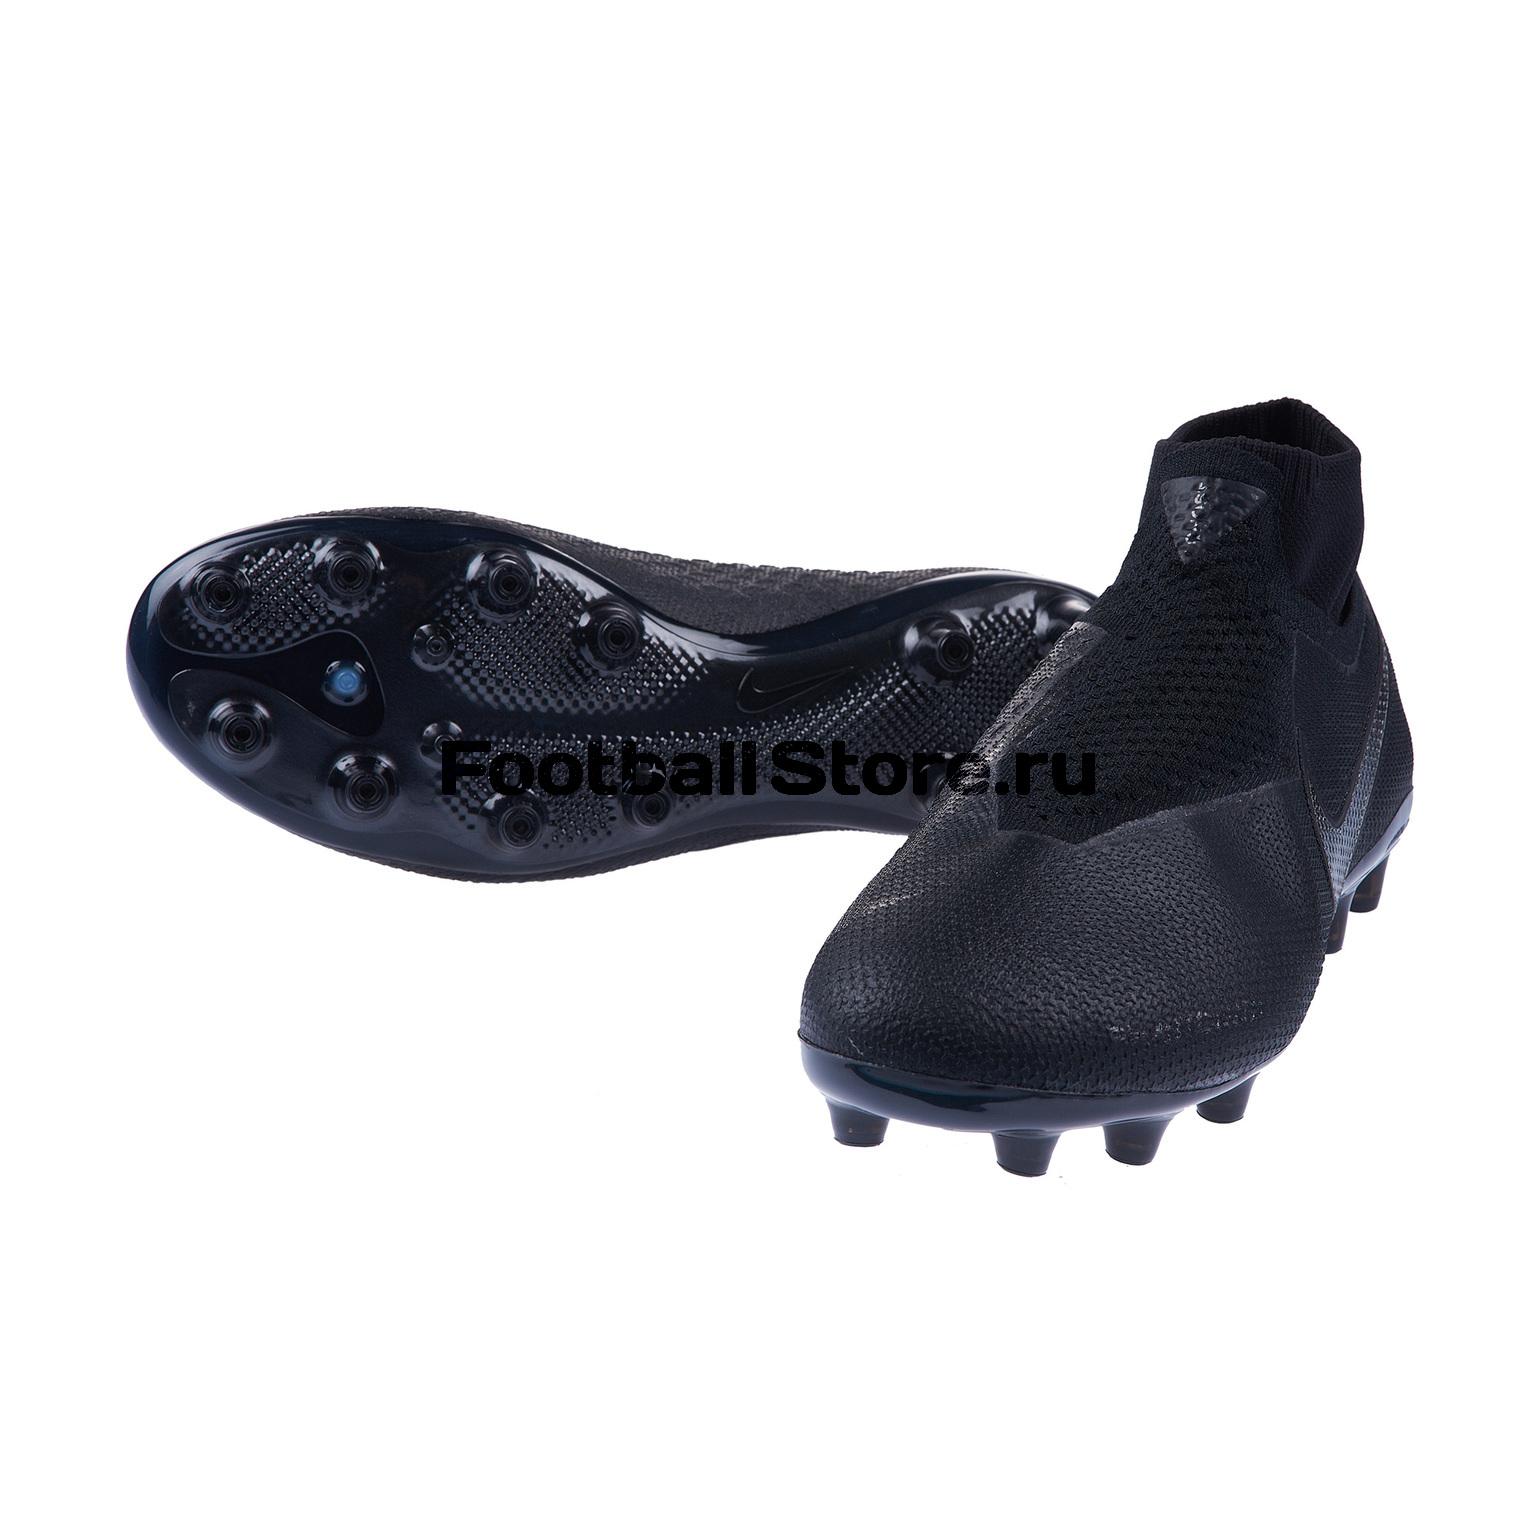 Бутсы Nike Hypervenom Phantom III Pro DF AG-Pro SR. . Бутсы Nike Phantom  Vision Elite Dynamic Fit Anti-Clog SG-PRO SR. 17 990 . Nike Phantom Vision. b7034ee6926c0